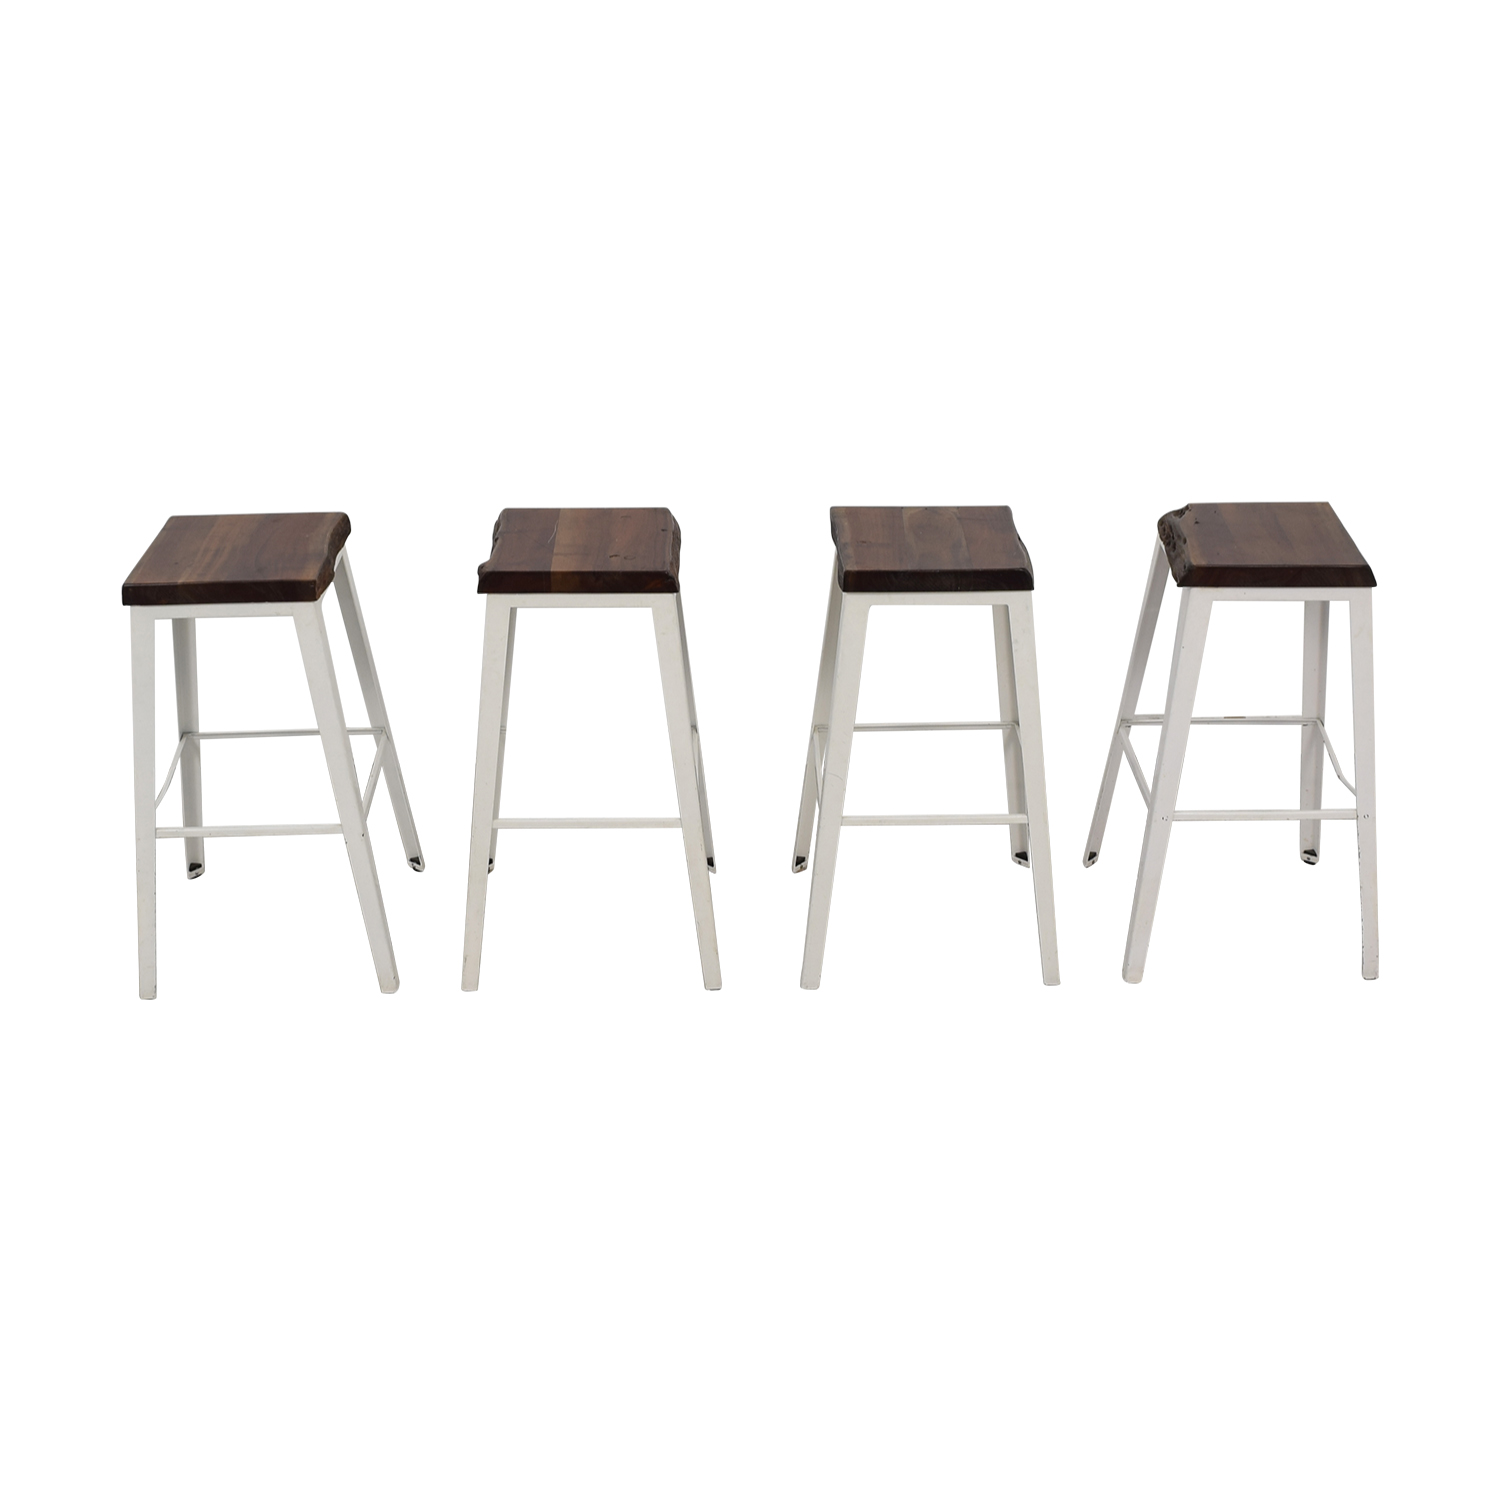 CB2 Wood and Metal Stools sale